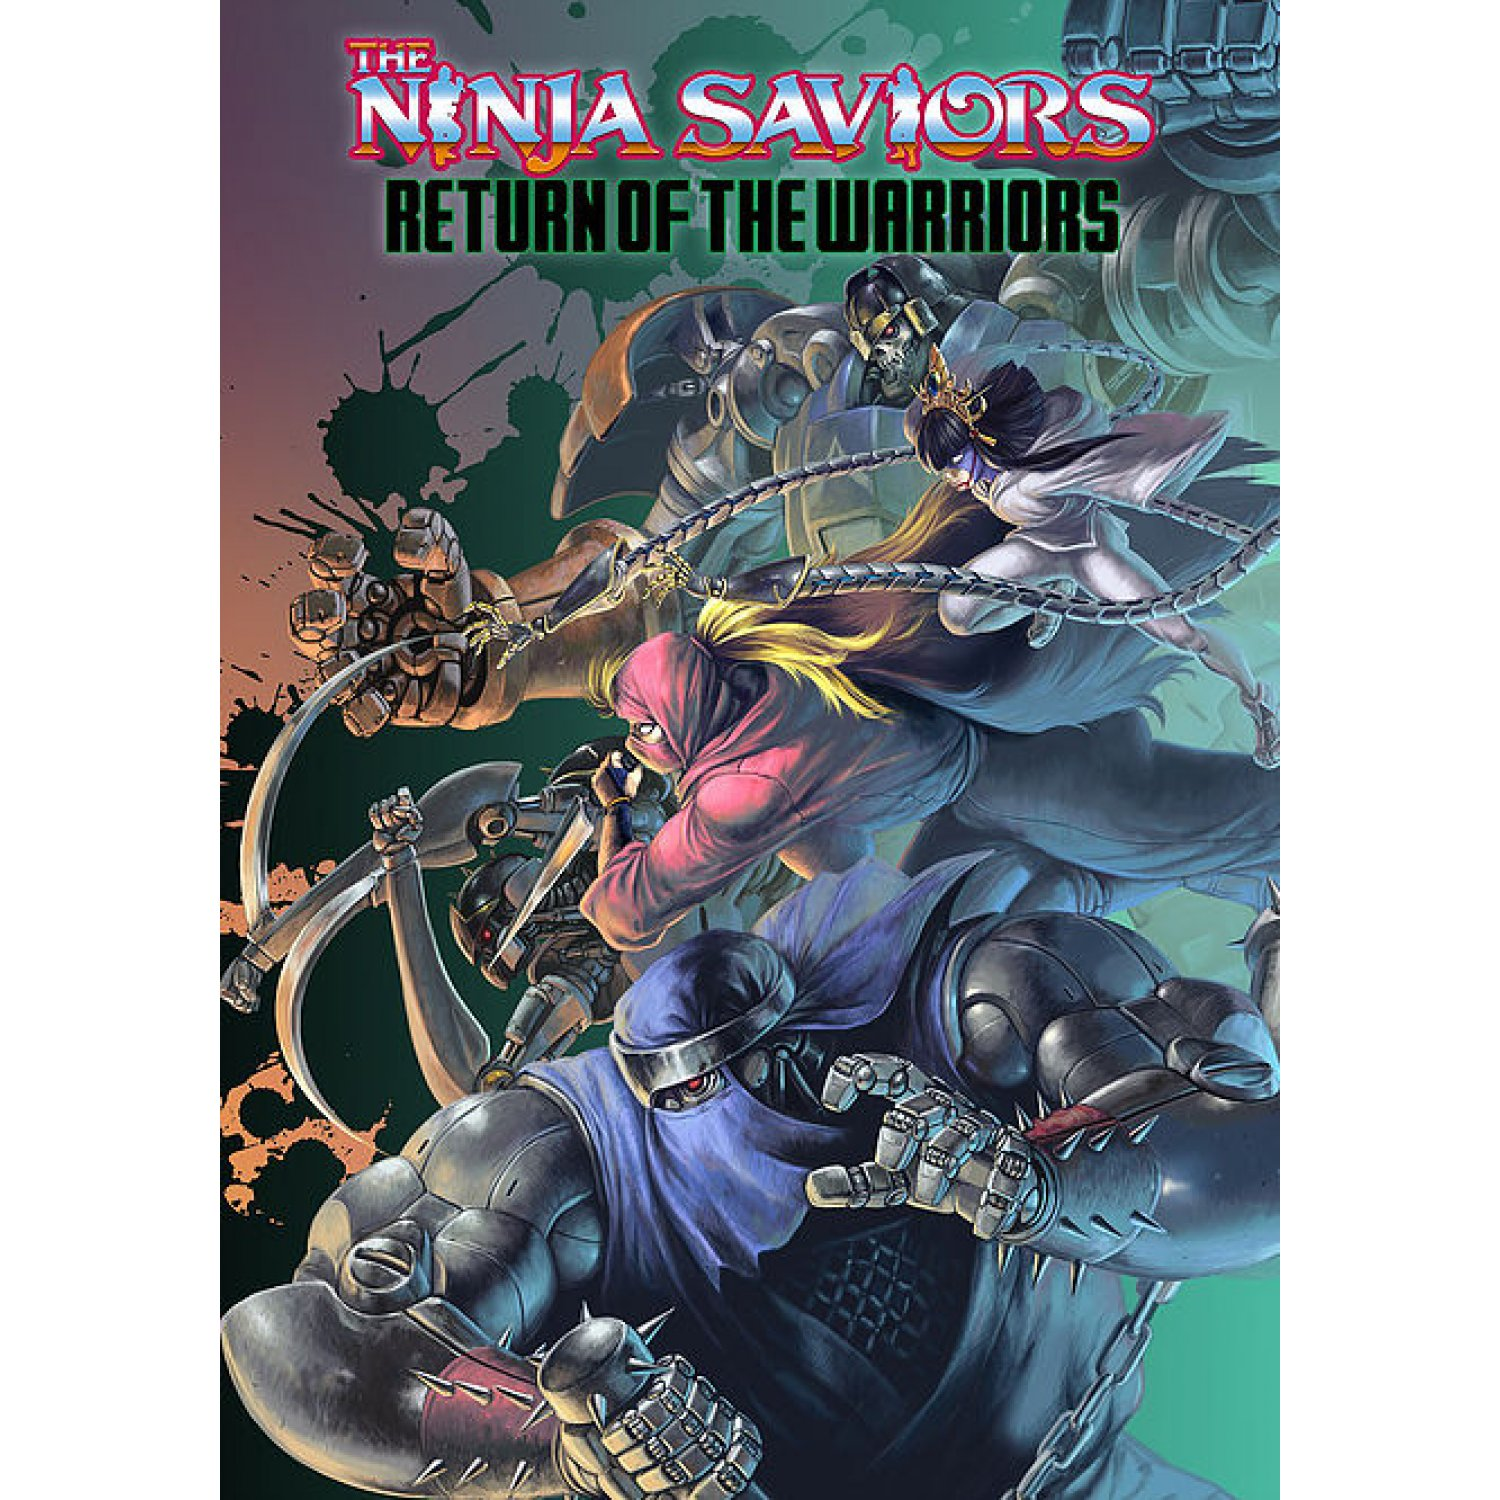 The Ninja Warriors: Once Again Set For Release In